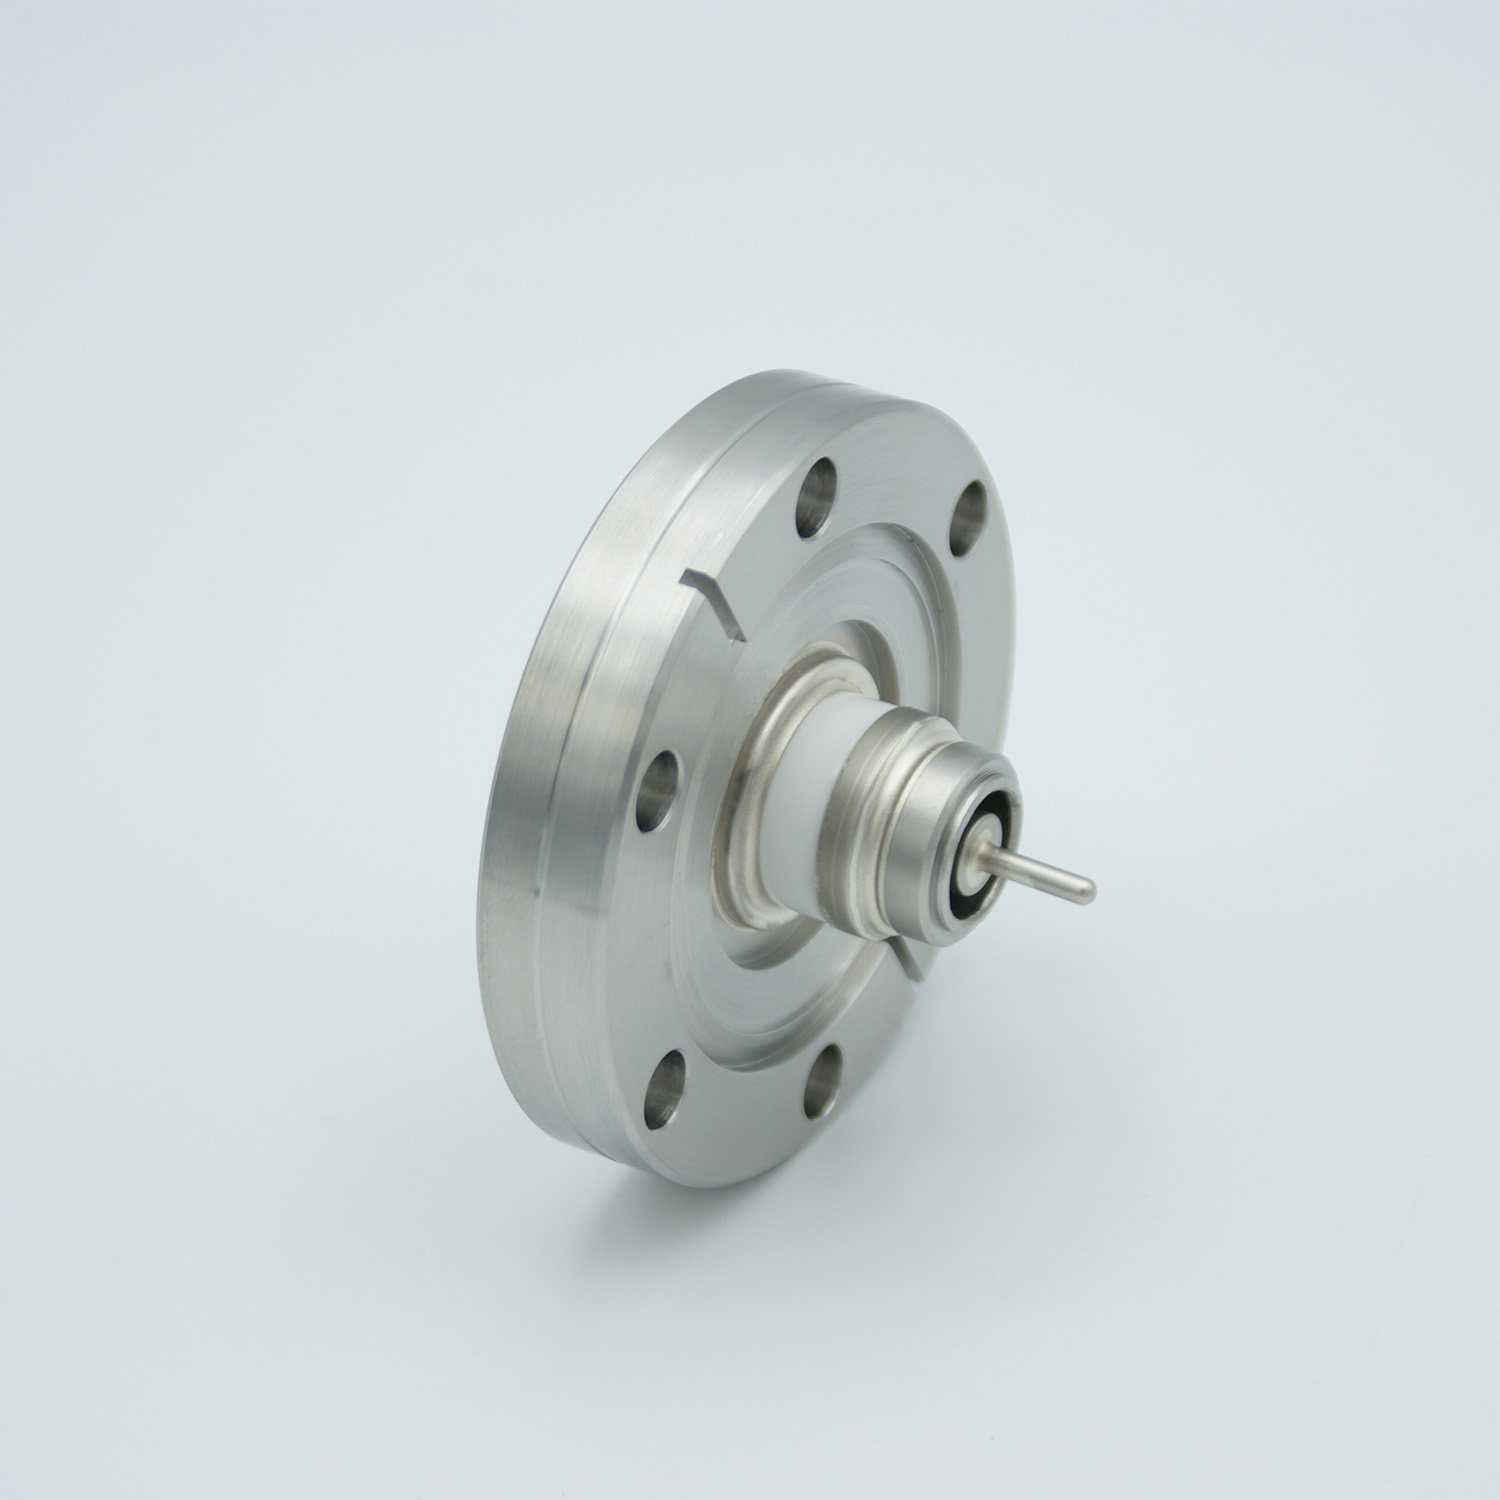 Floating shield, single ended BNC feedthrough 500V / 3 Amp, DN40CF without air side connector